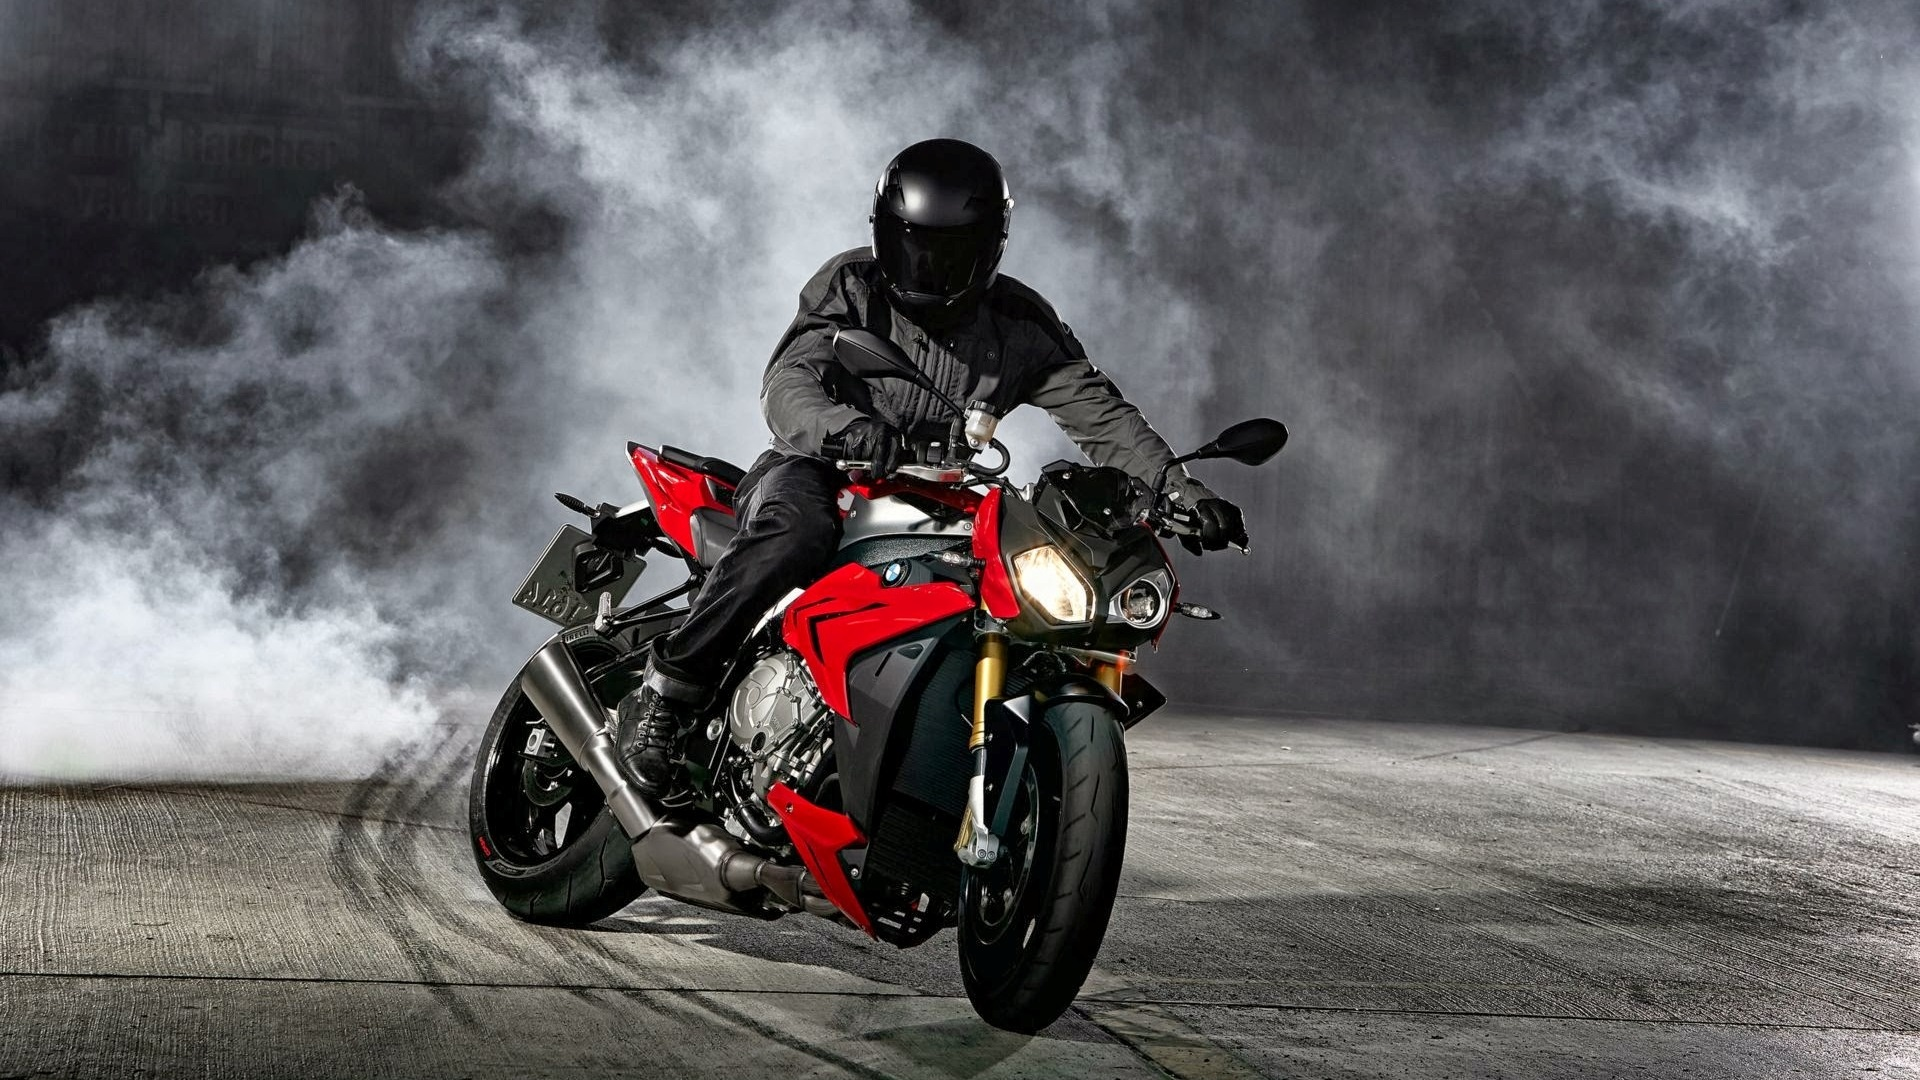 Bmw S 1000 R 2014 Wallpapers 1920x1080 676170